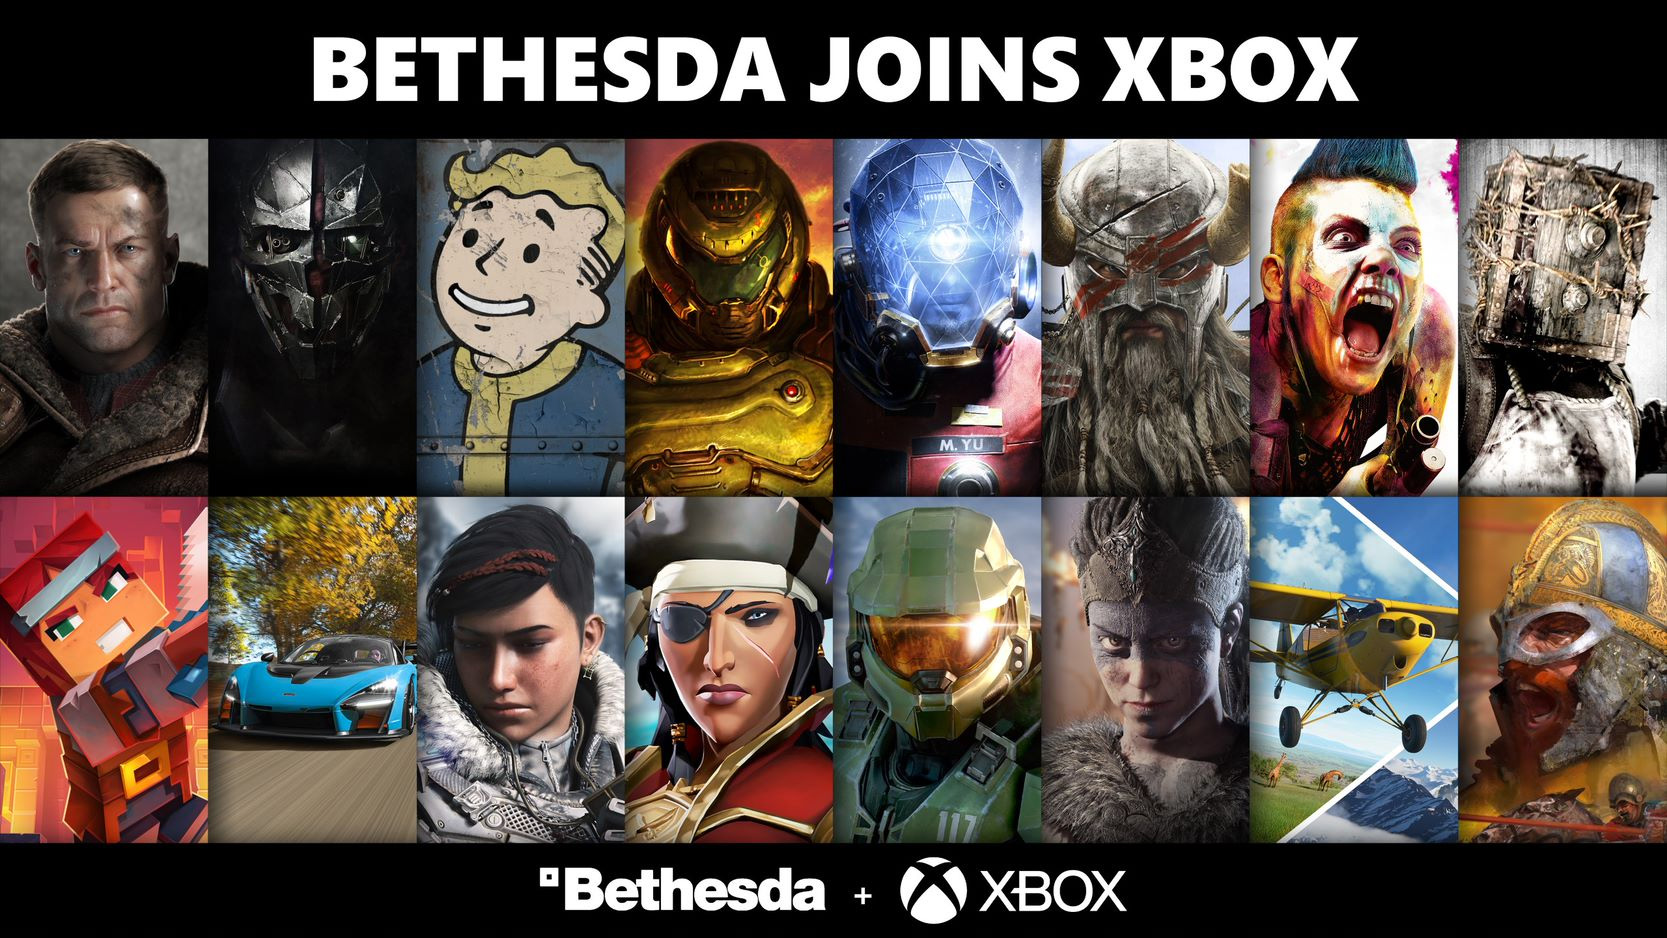 Xbox Game Pass has 20 Bethesda games lined up including Fallout 76 and Morrowind screenshot